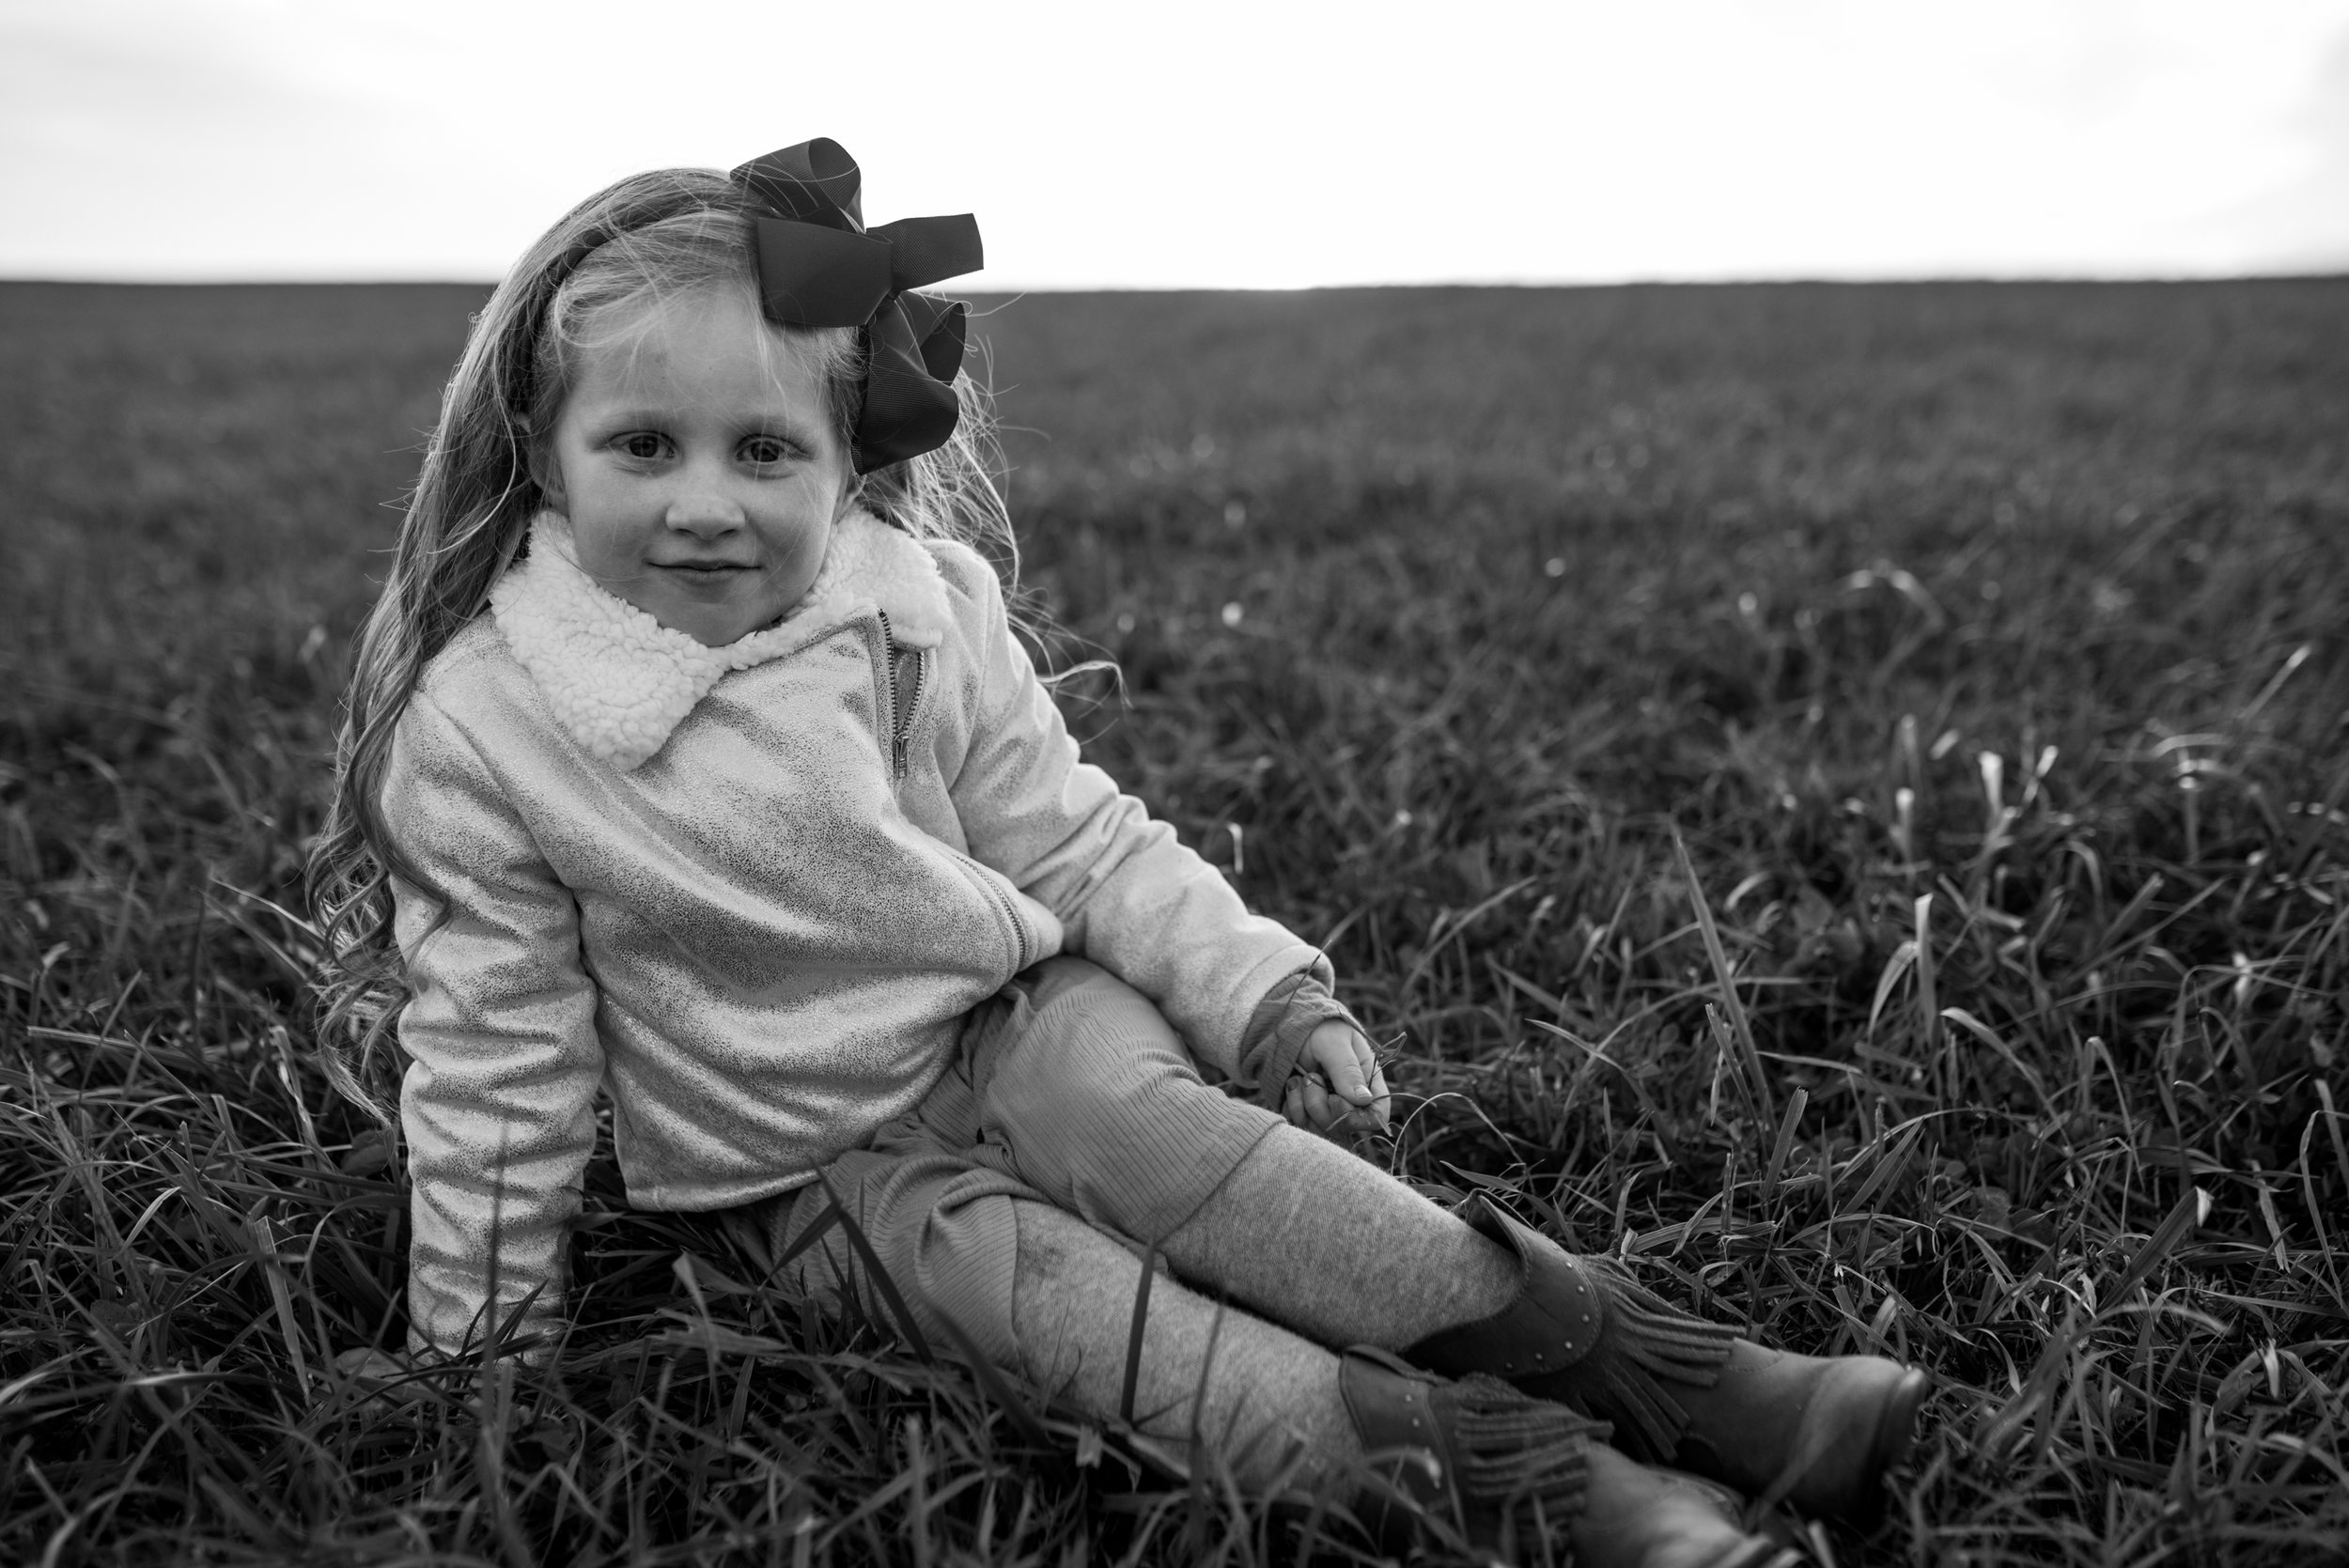 Young girl sitting in a field smiling